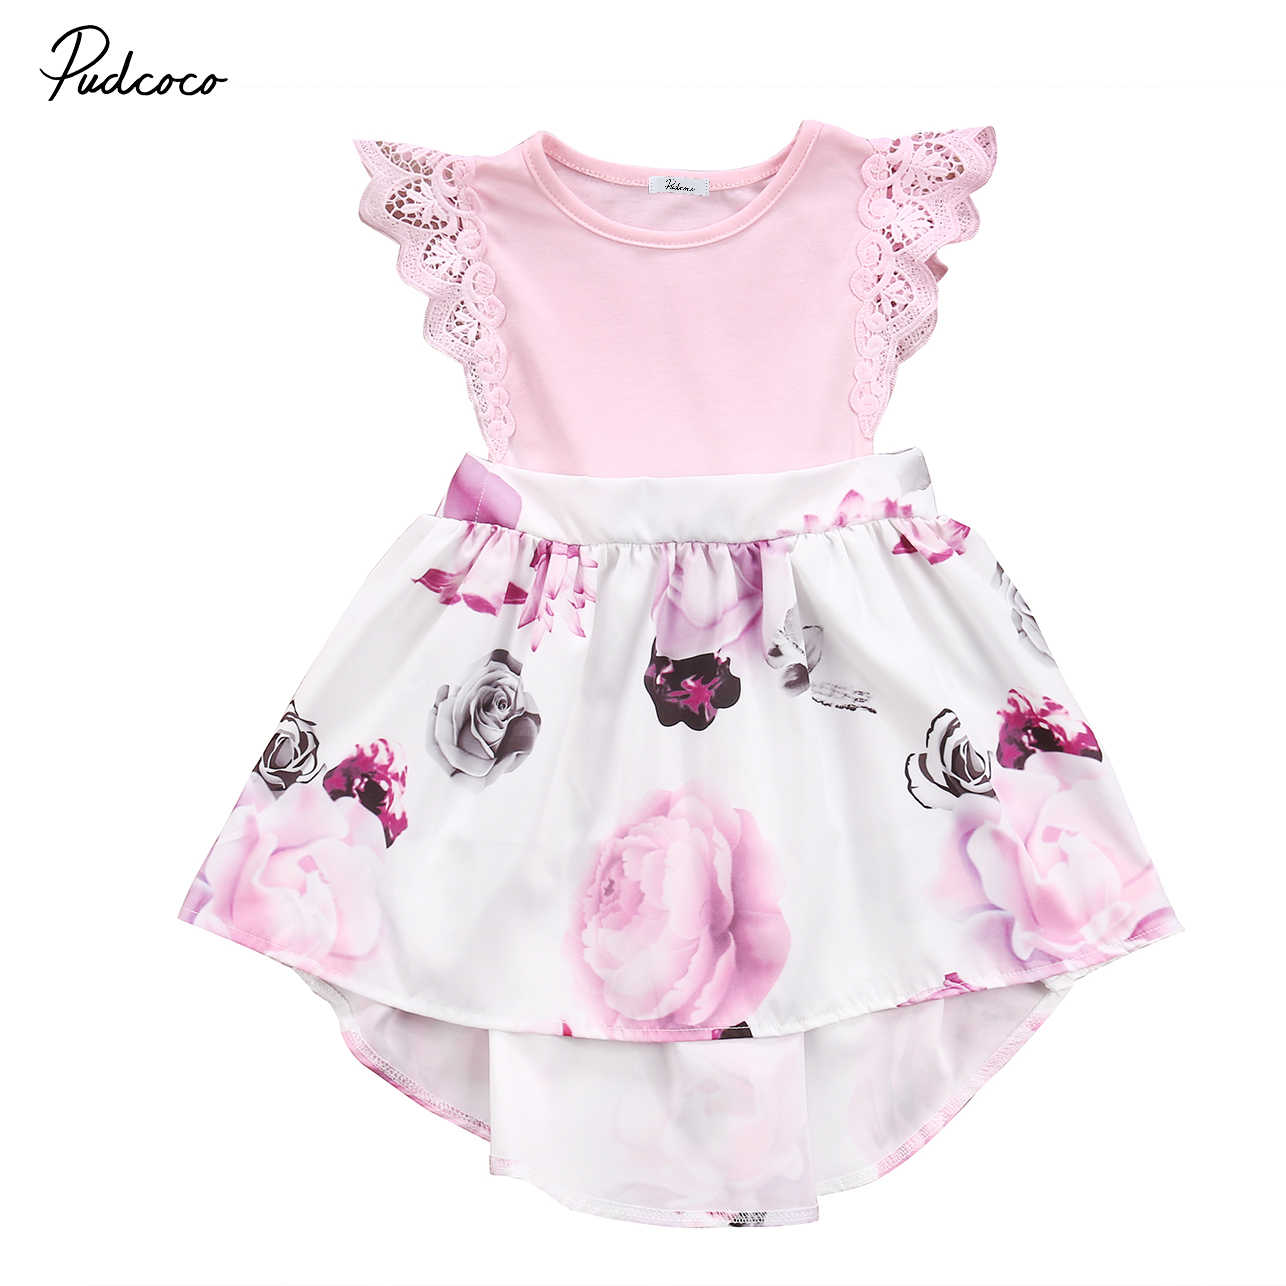 1db37db063e1 ... Cute Toddler Kids Baby Girls Sisters Matching Clothes Outfits Baby  Little Big Sisters Floral Tutu Rompers ...